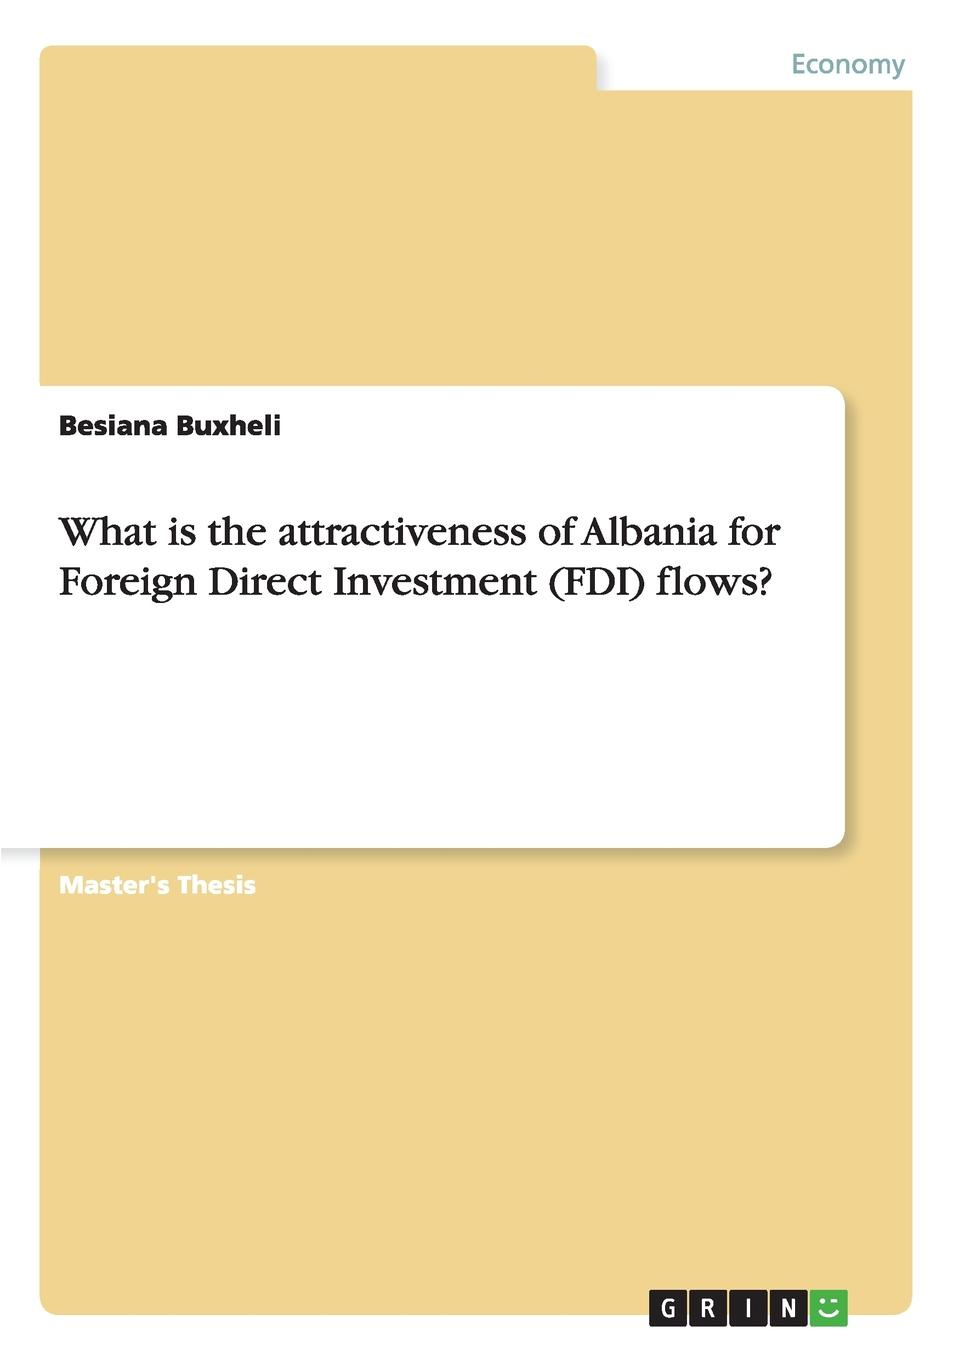 Besiana Buxheli What is the attractiveness of Albania for Foreign Direct Investment (FDI) flows.